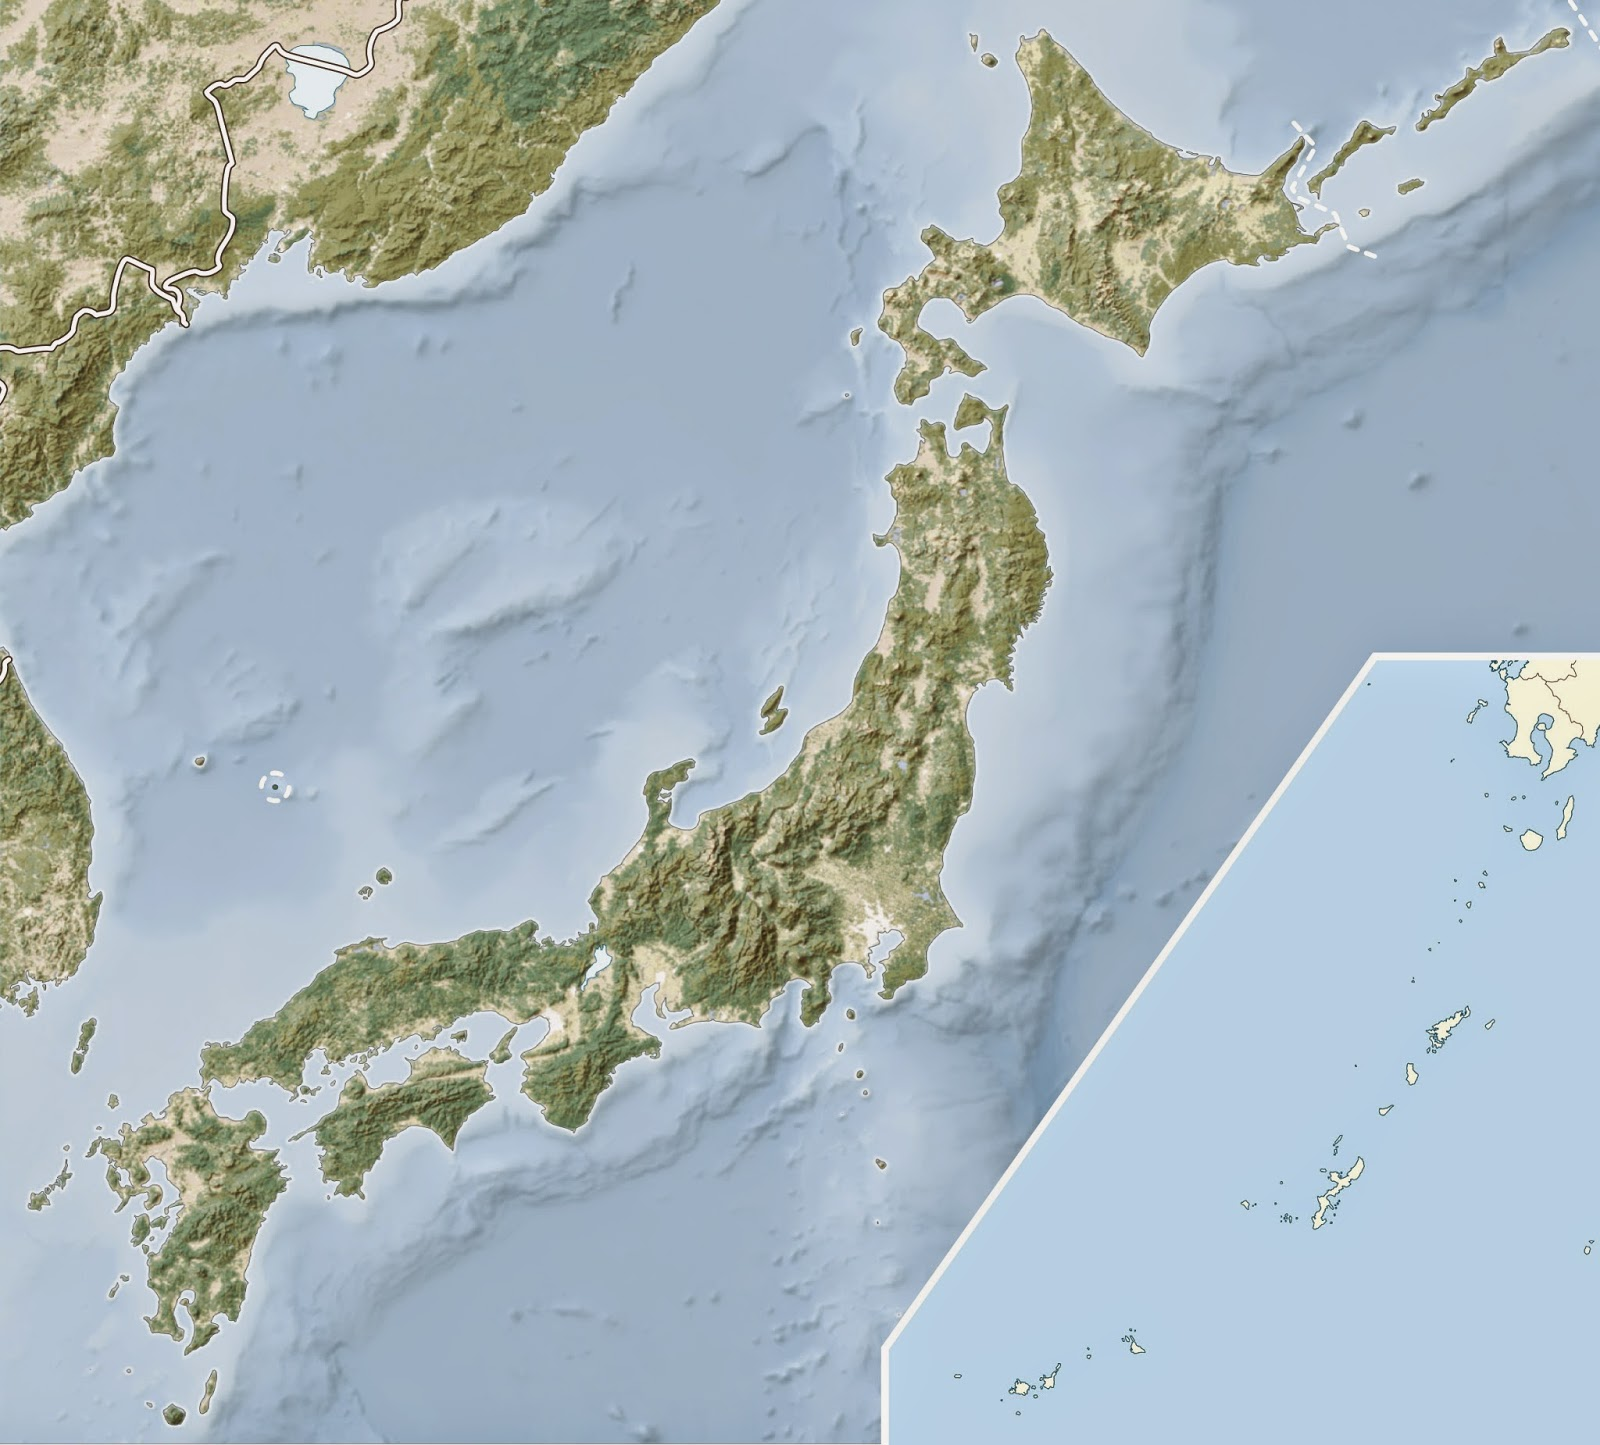 Physical features map of Japan and Okinawa